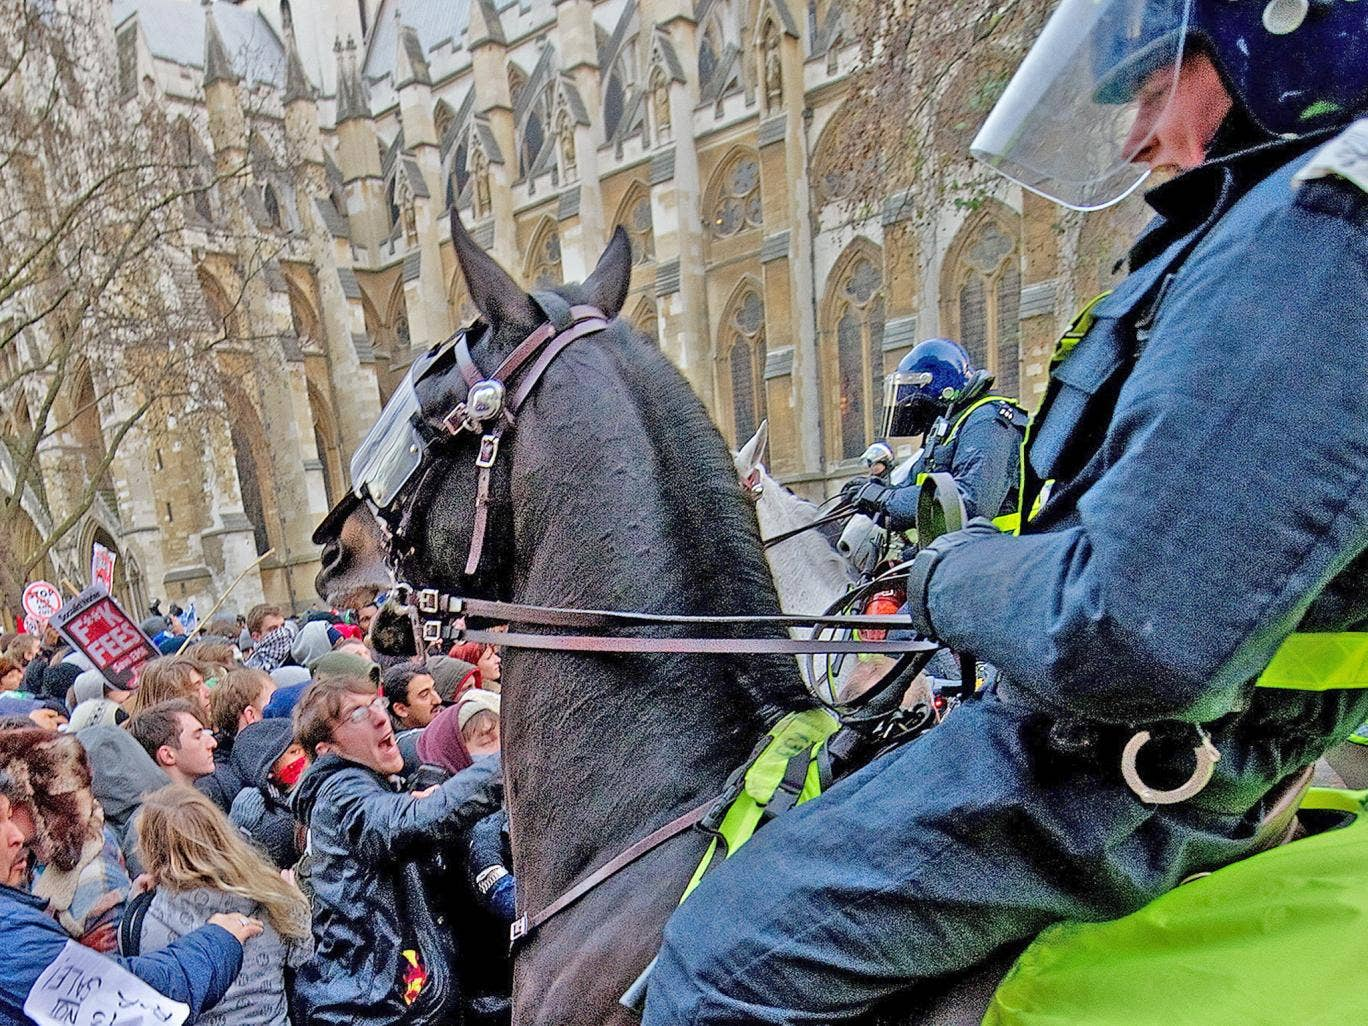 Mounted police during student protests in London